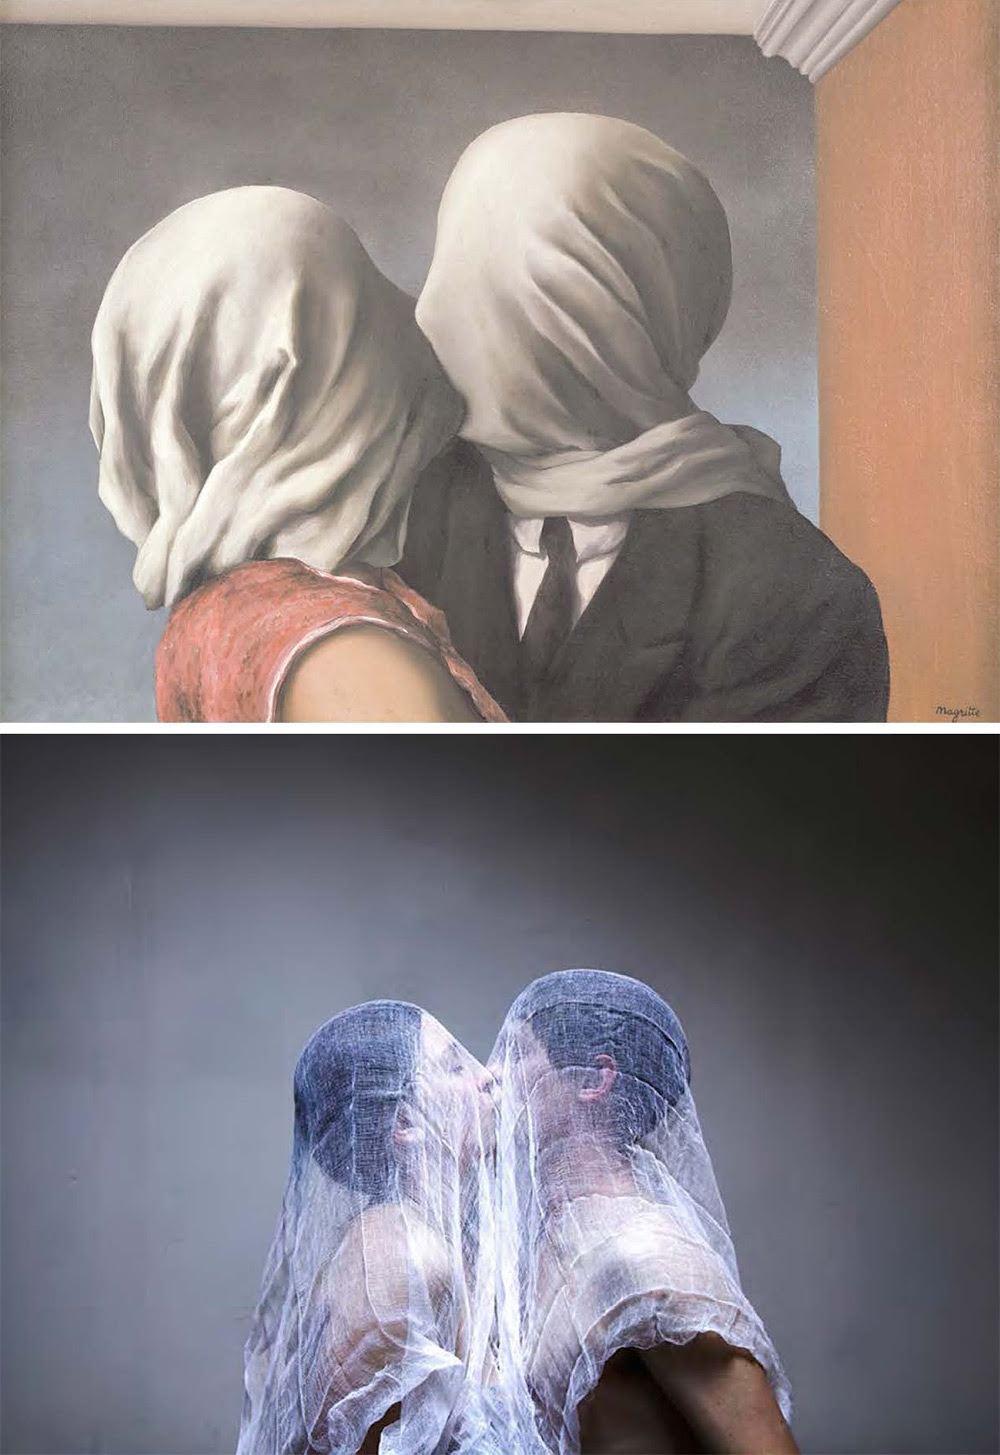 """Rene Magritte, """"The Lovers,"""" 1928, oil on canvas, remake by Linda Cieniawska"""